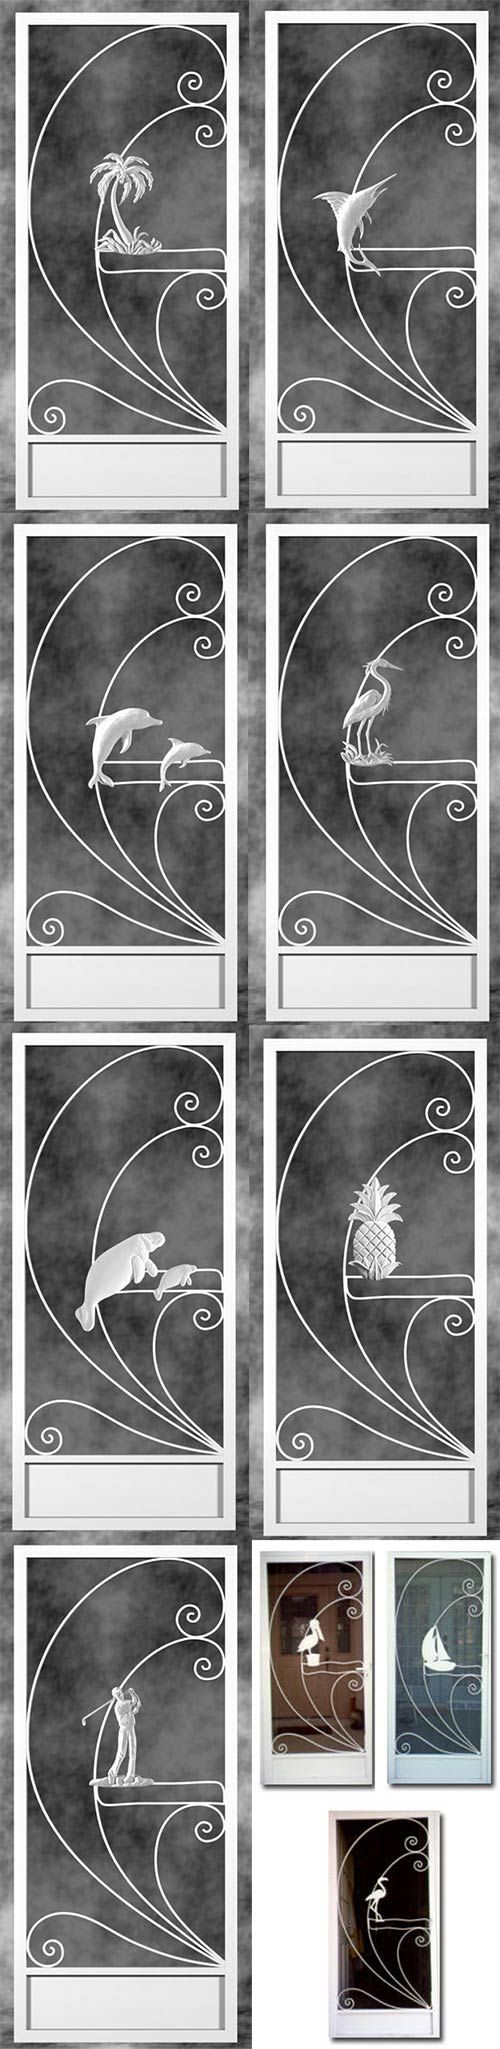 2 manufacturers - 18 styles - Screen door inserts with herons, flamingos and more - Retro Renovation